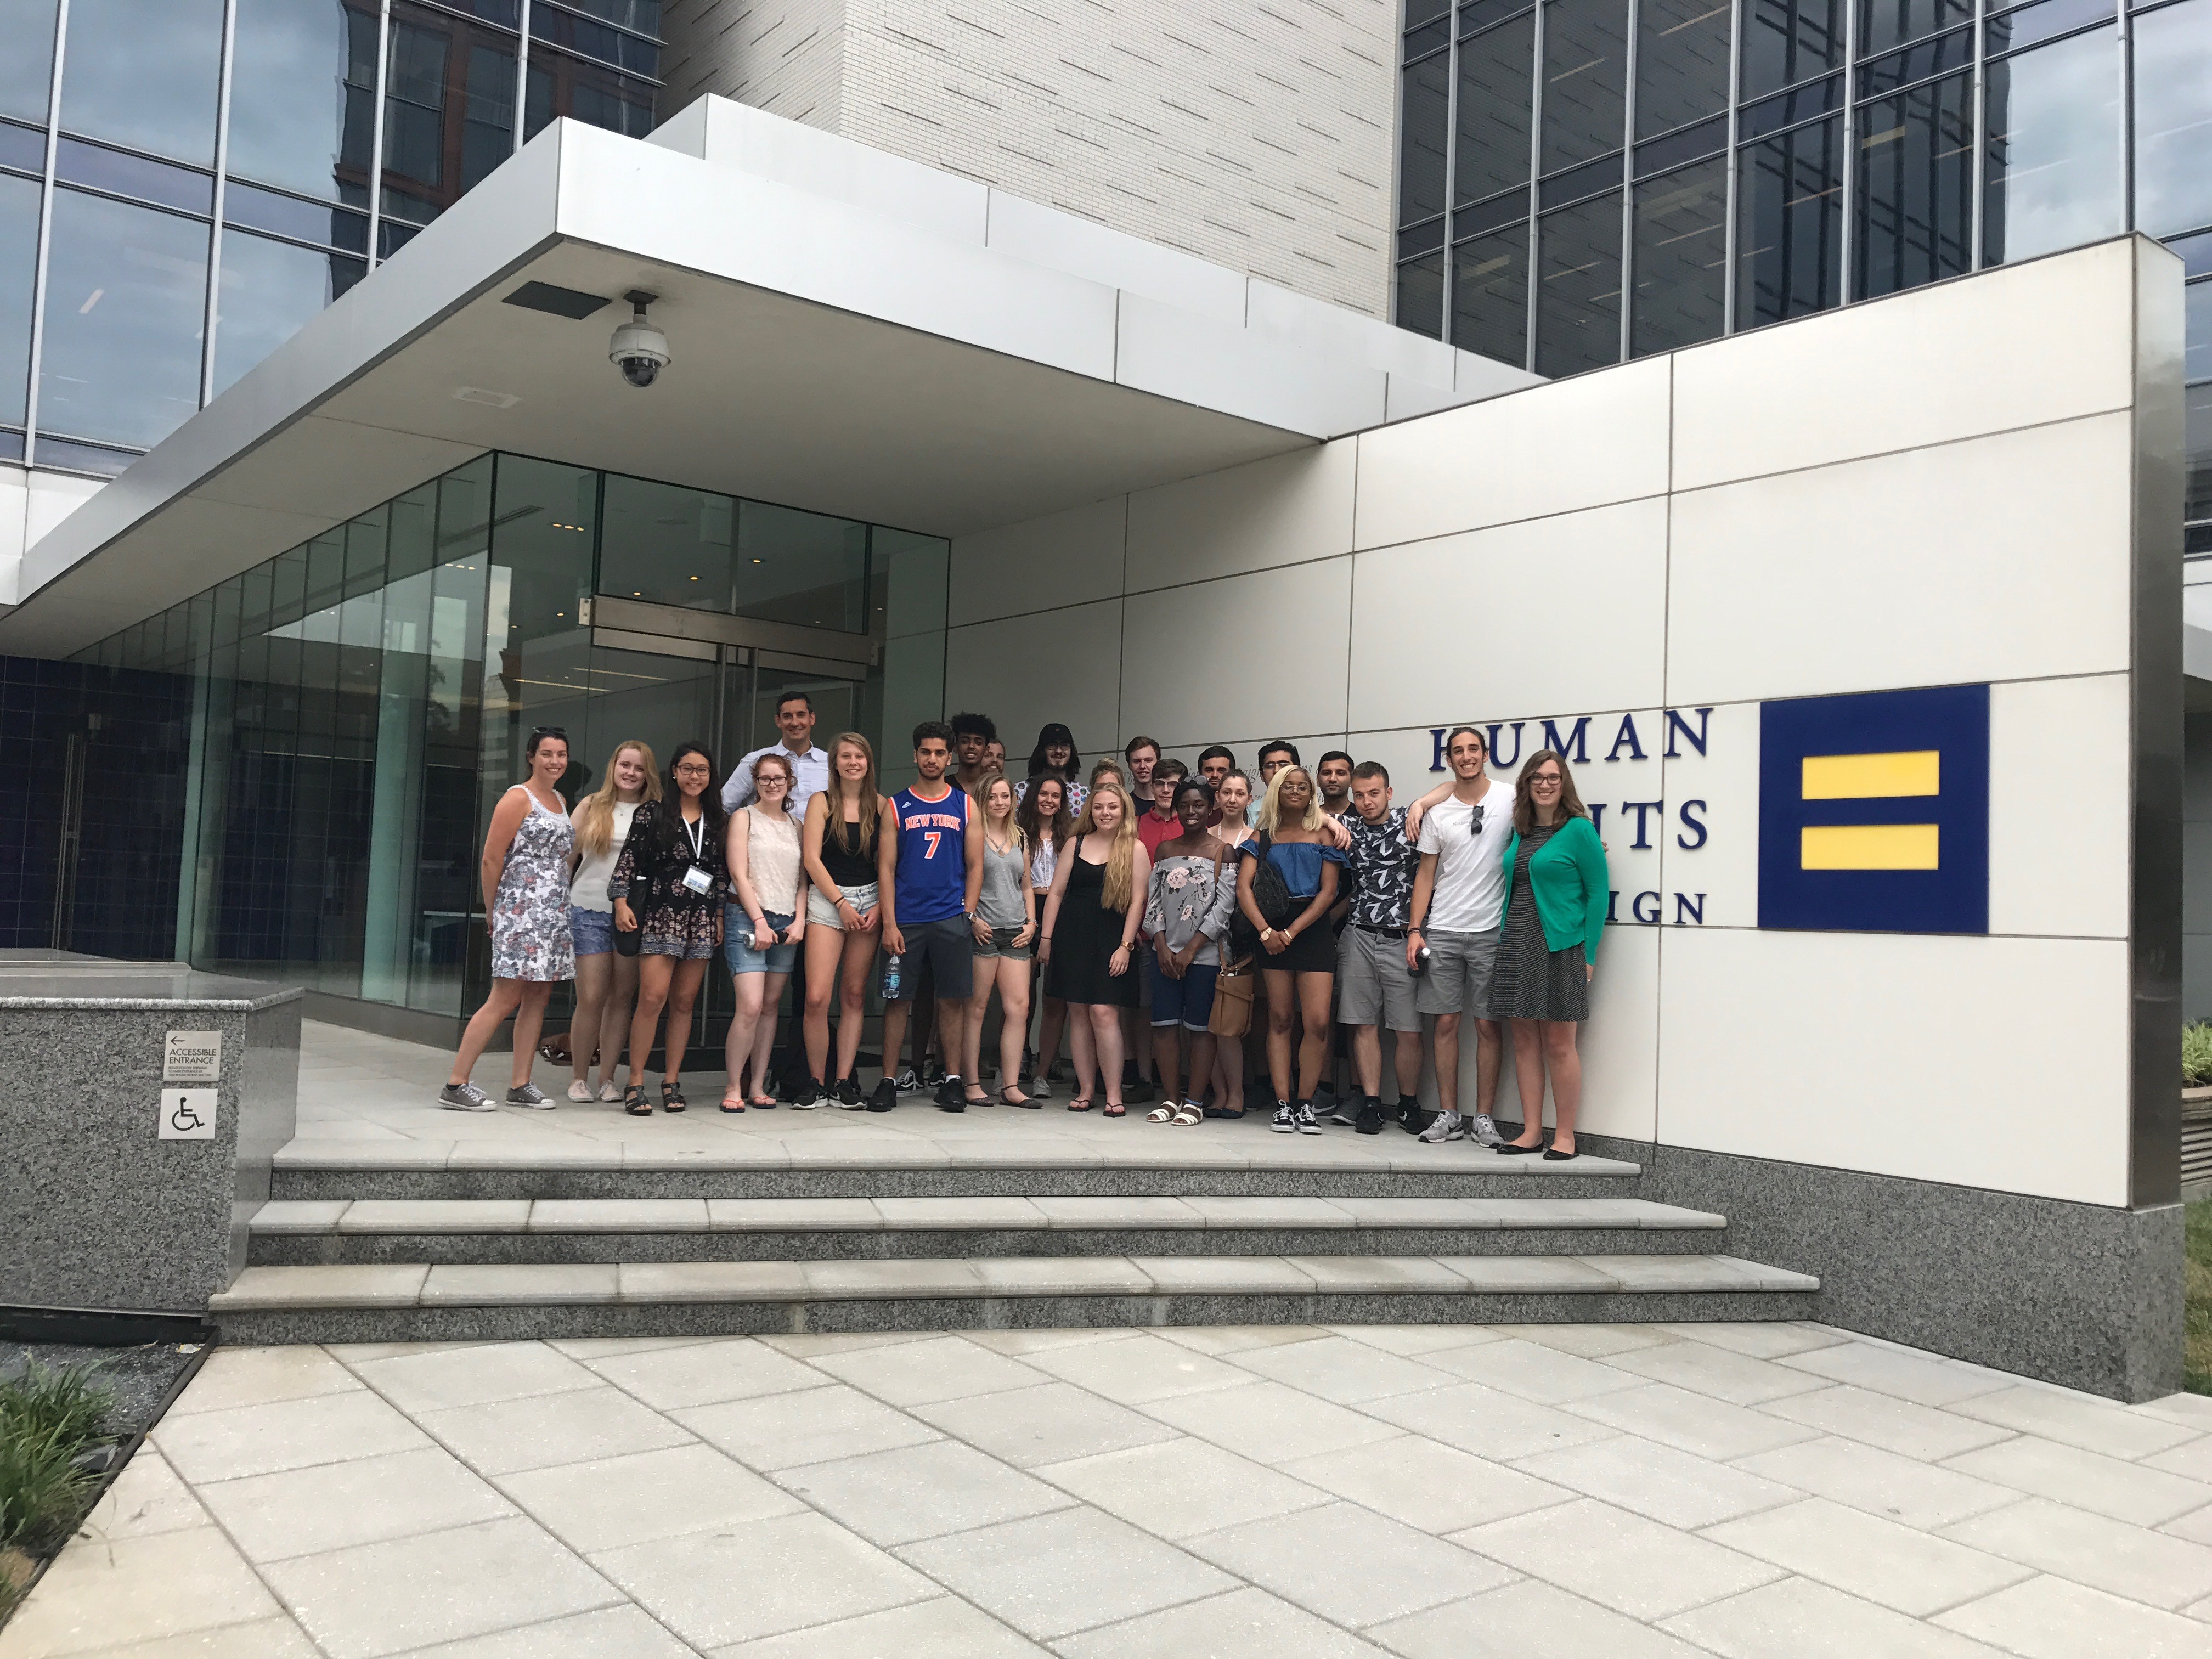 Group photo of students at the Human Rights Campaign headquarters